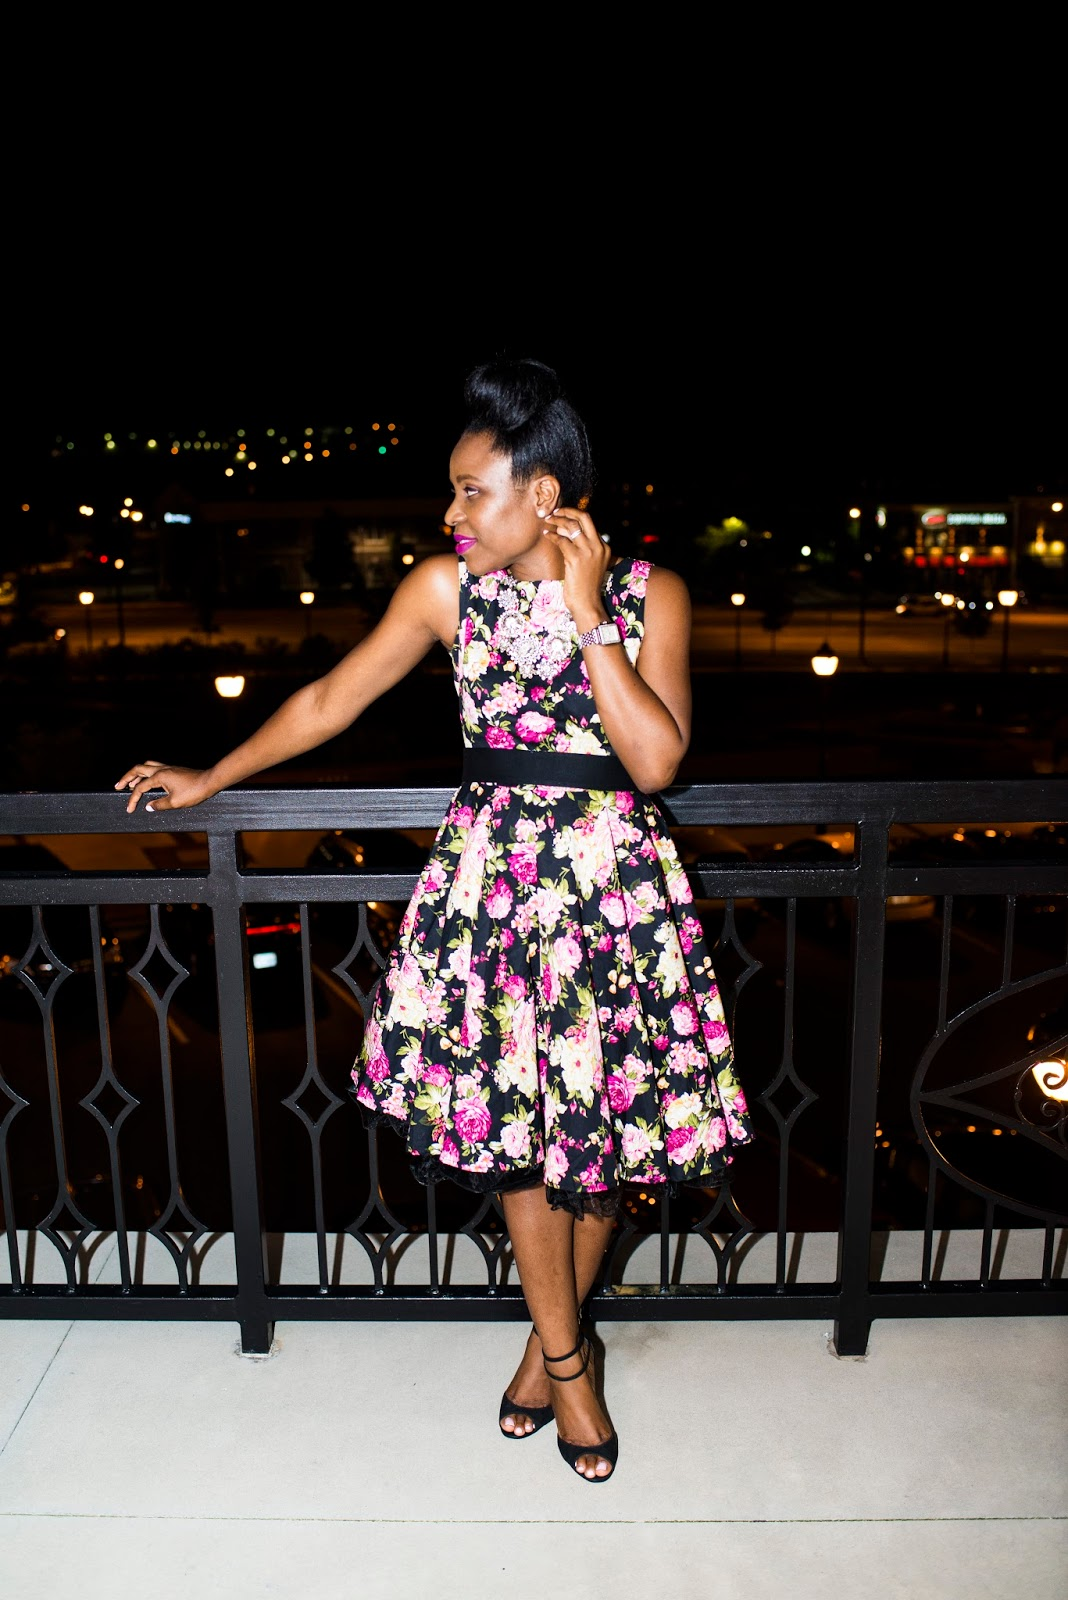 What to wear: Vintage floral dress